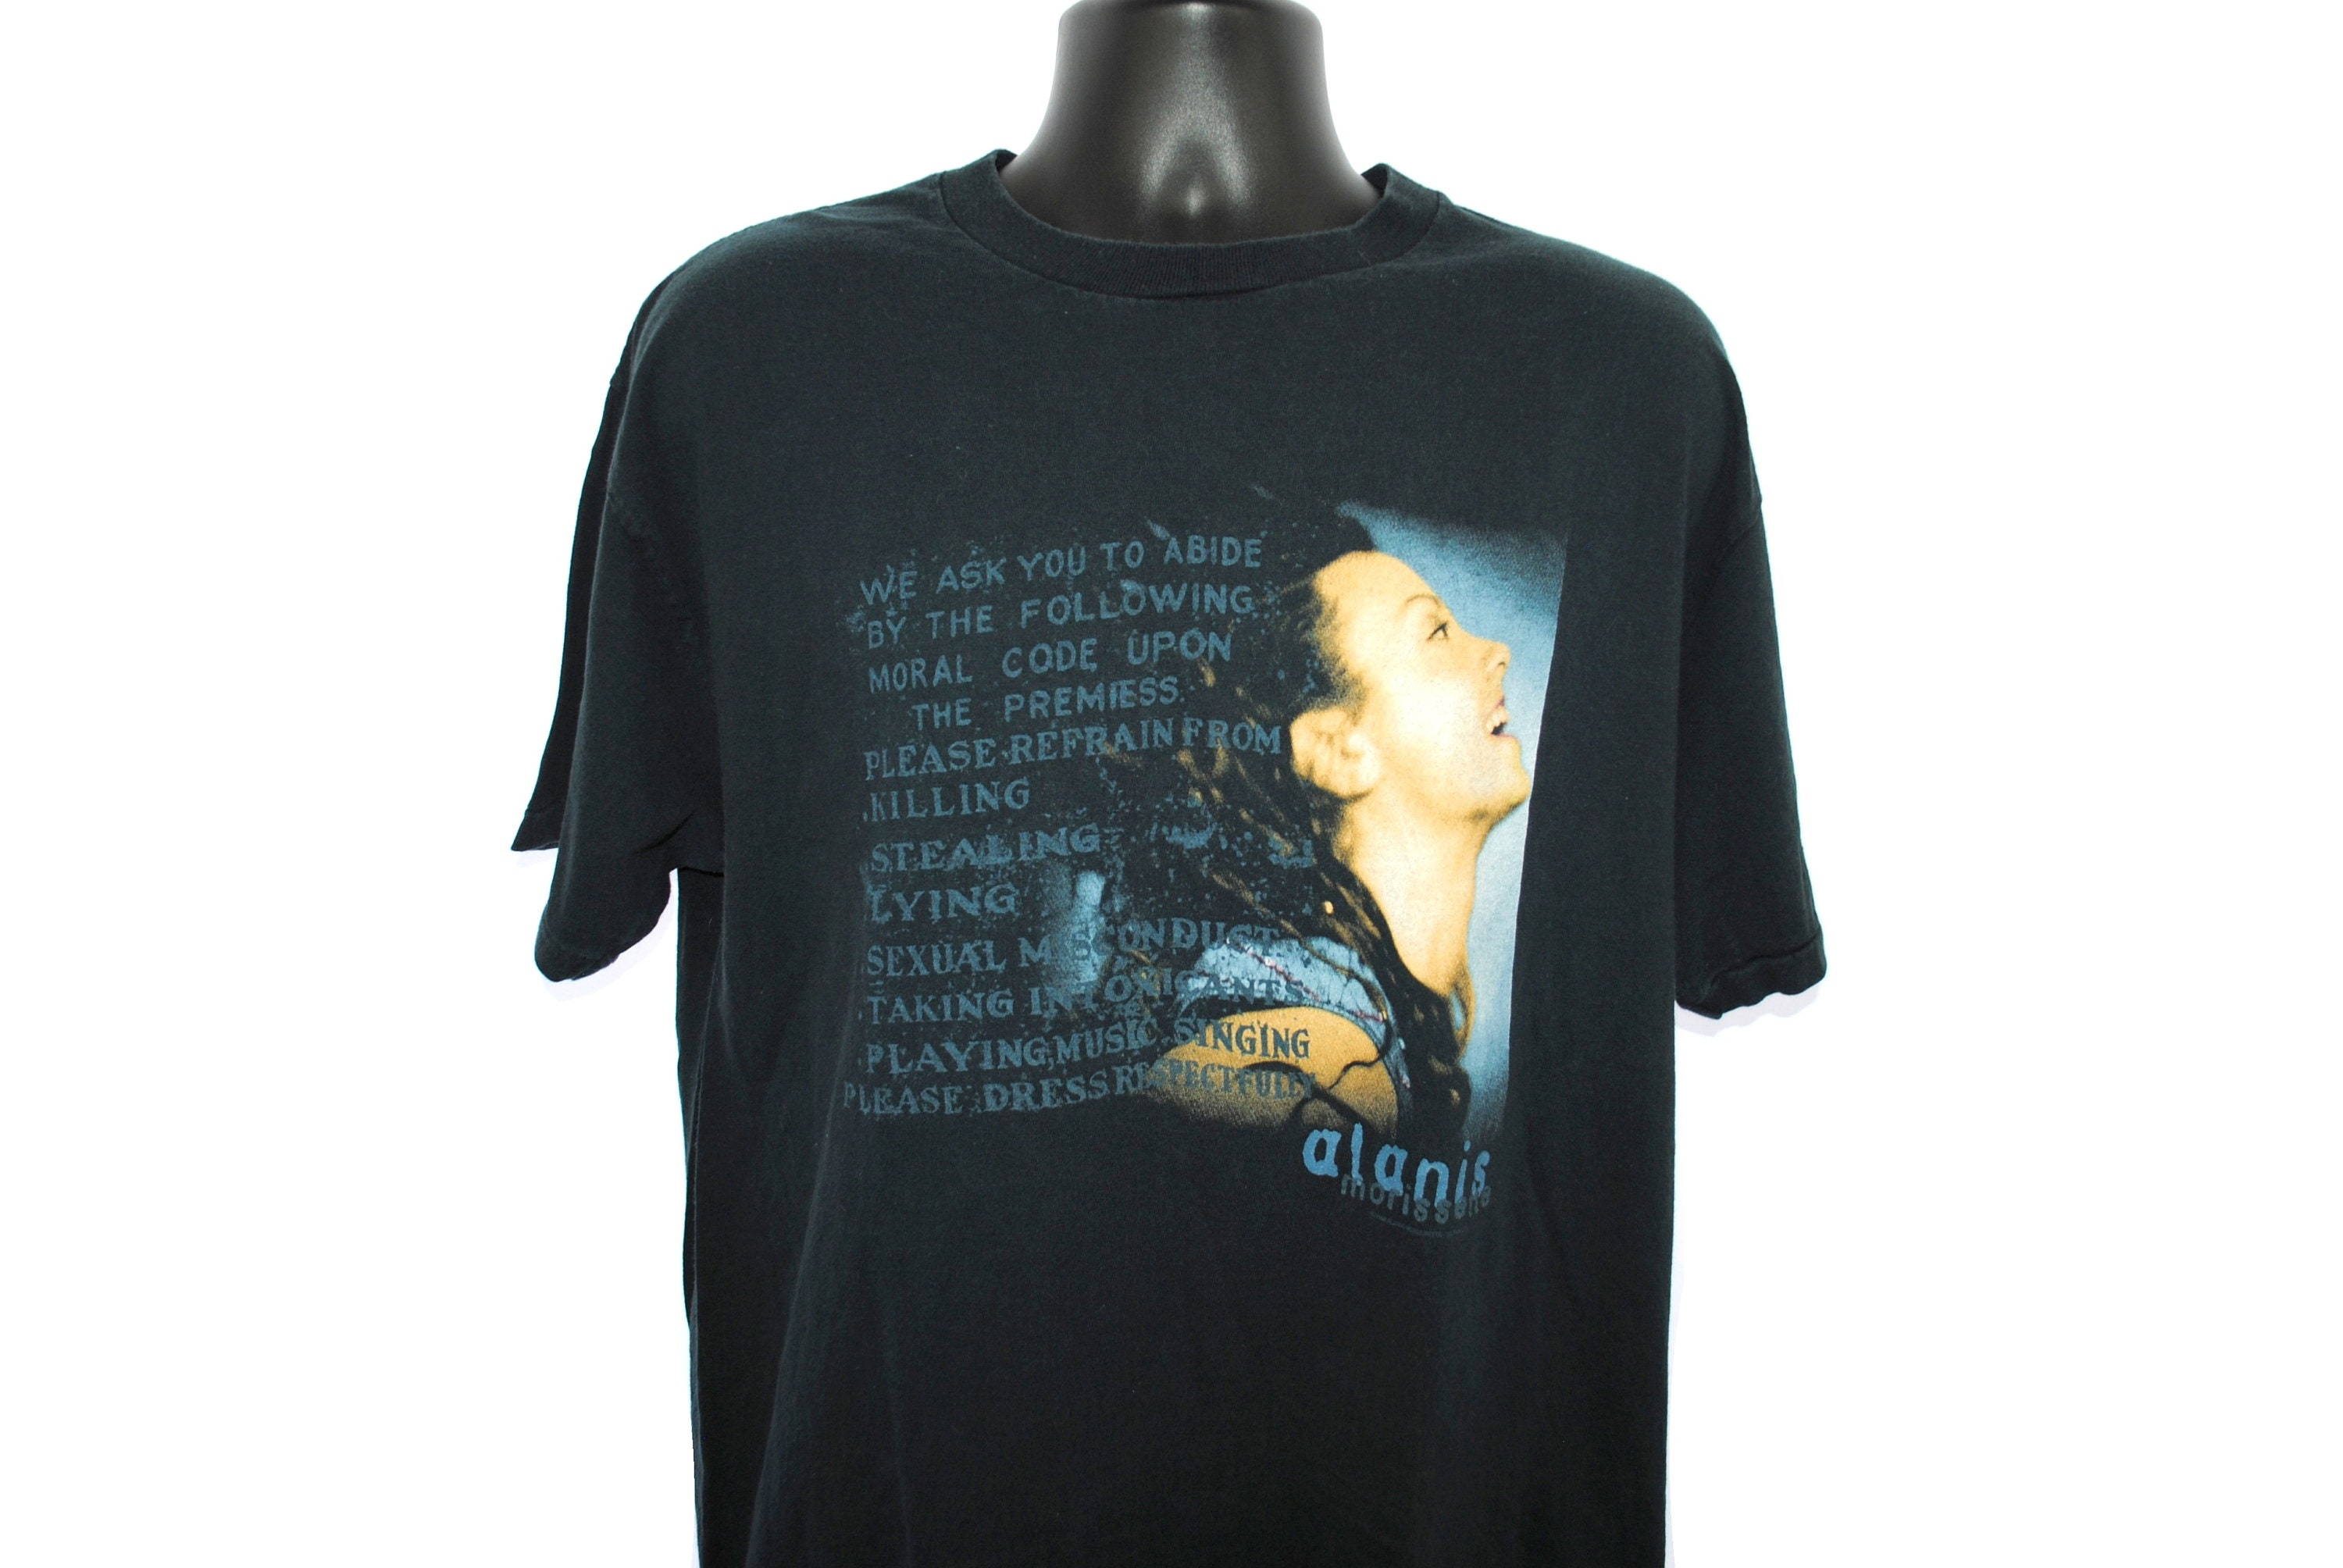 ad19c366cc 1998 Alanis Morissette Vintage Thank U Era Supposed Former Infatuation  Junkie Album Promo Classic Jagged Little Pill Follow Up Tour T-Shirt